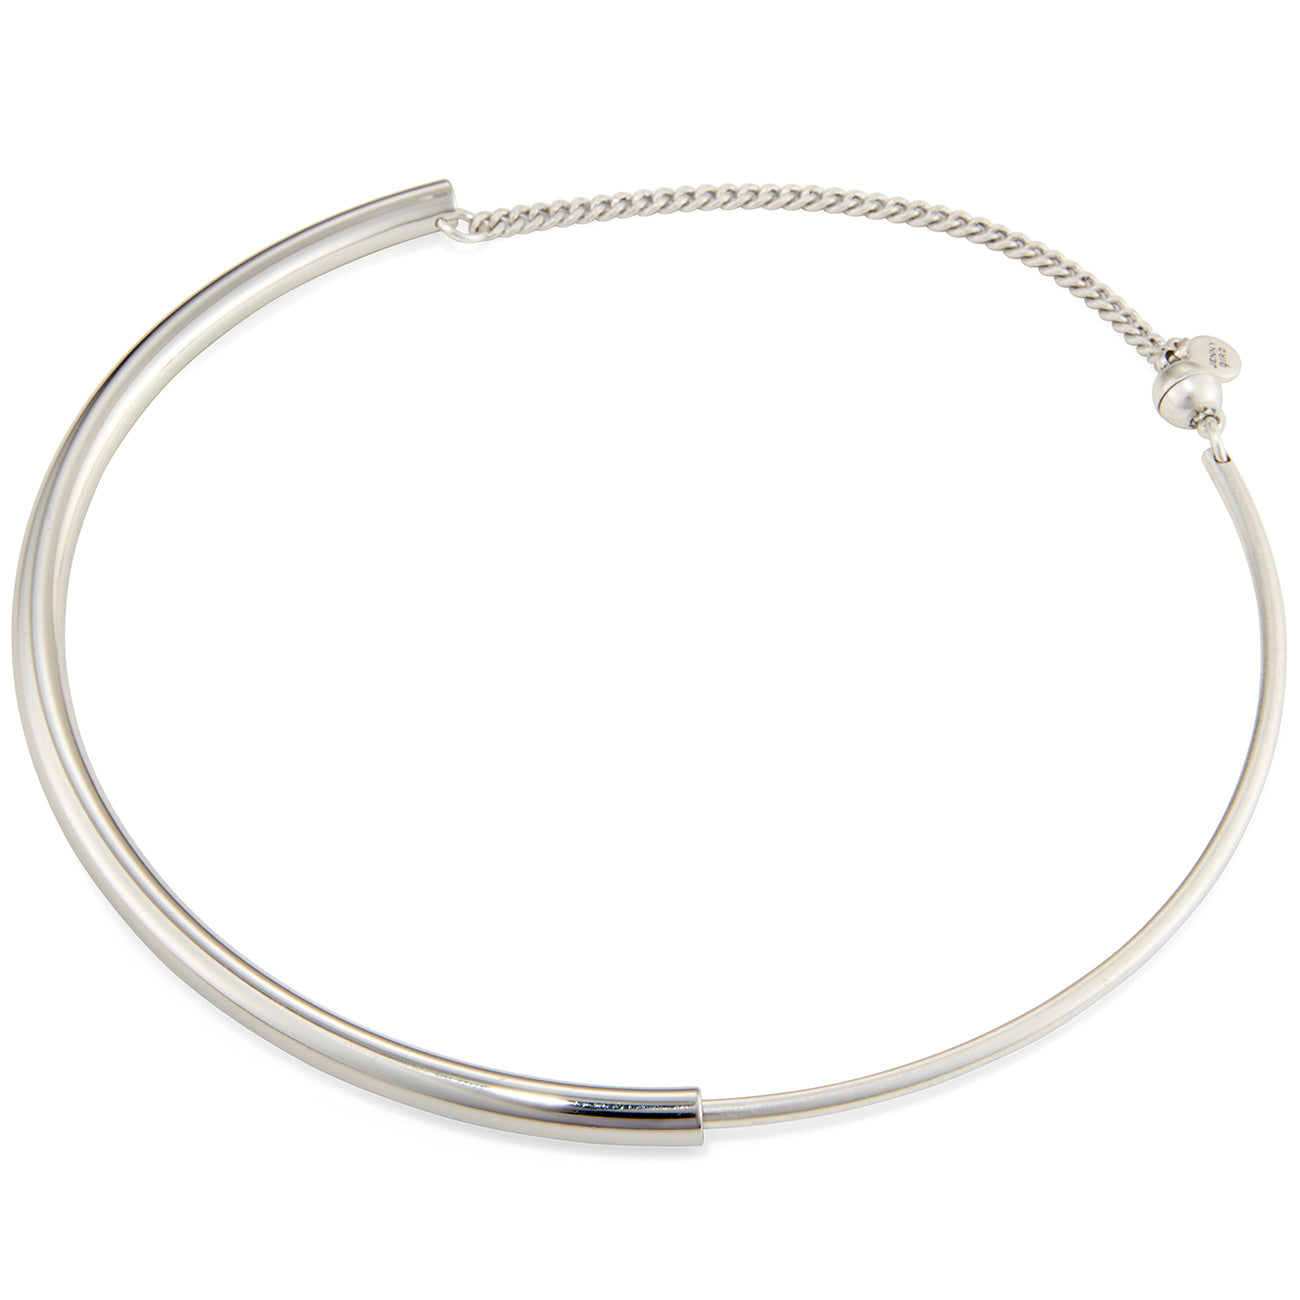 The Small Lola Collar by Jenny Bird in Rhodium